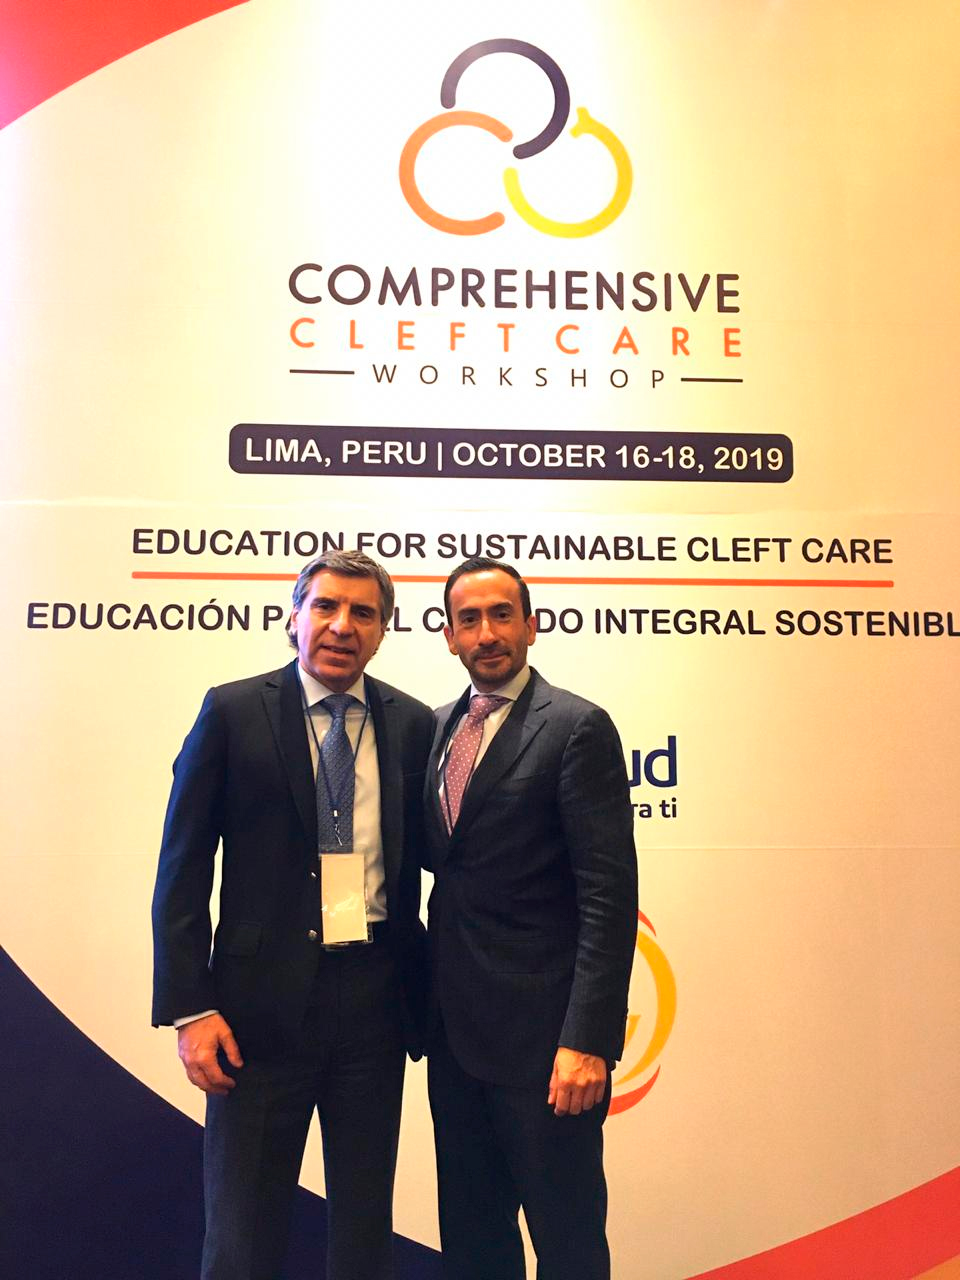 2019 International Comprehensive Cleft Care Workshop (CCCW), Lima, Perú